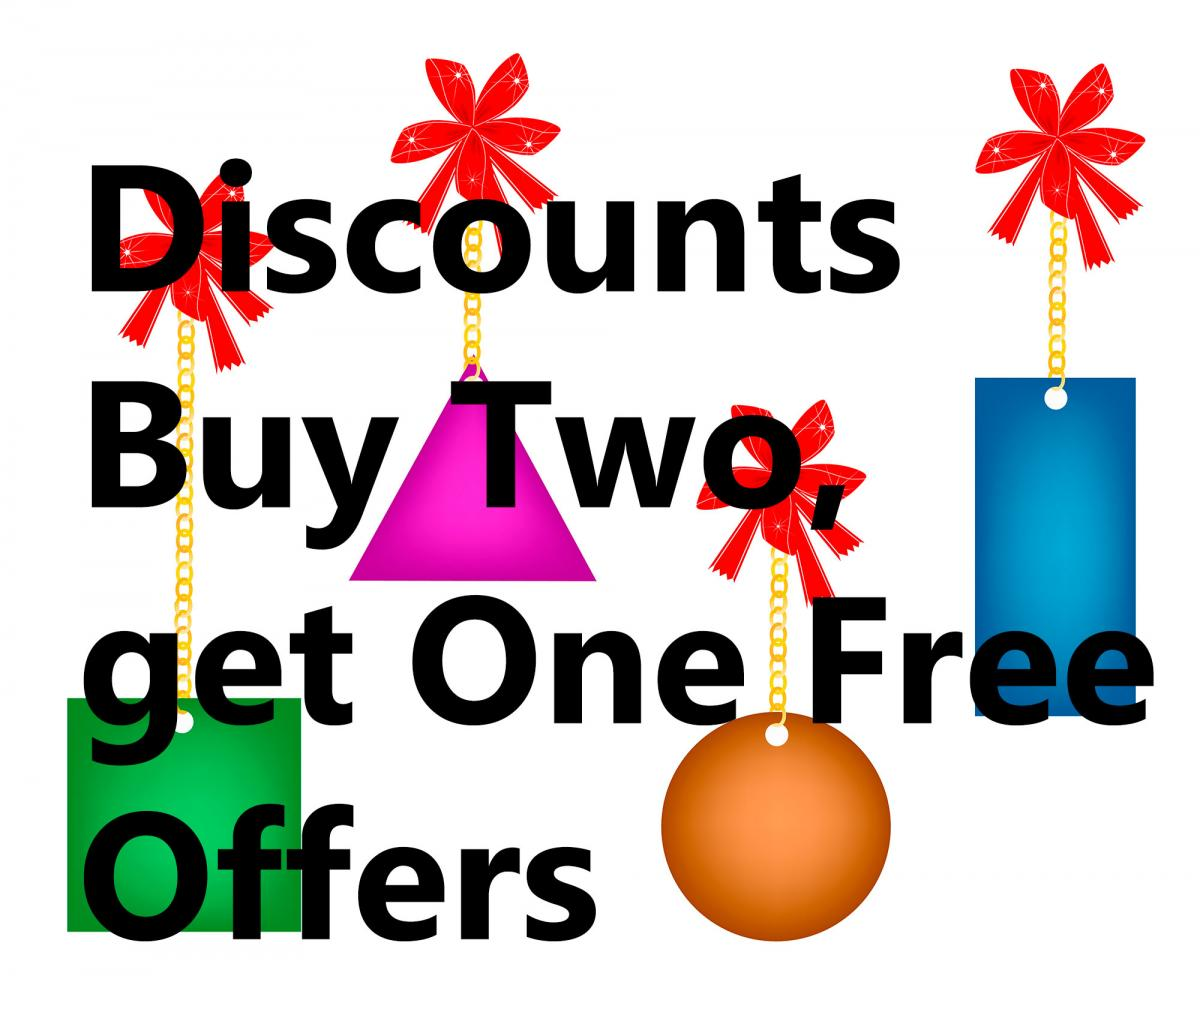 Discounts, Offers, Buy two get one free